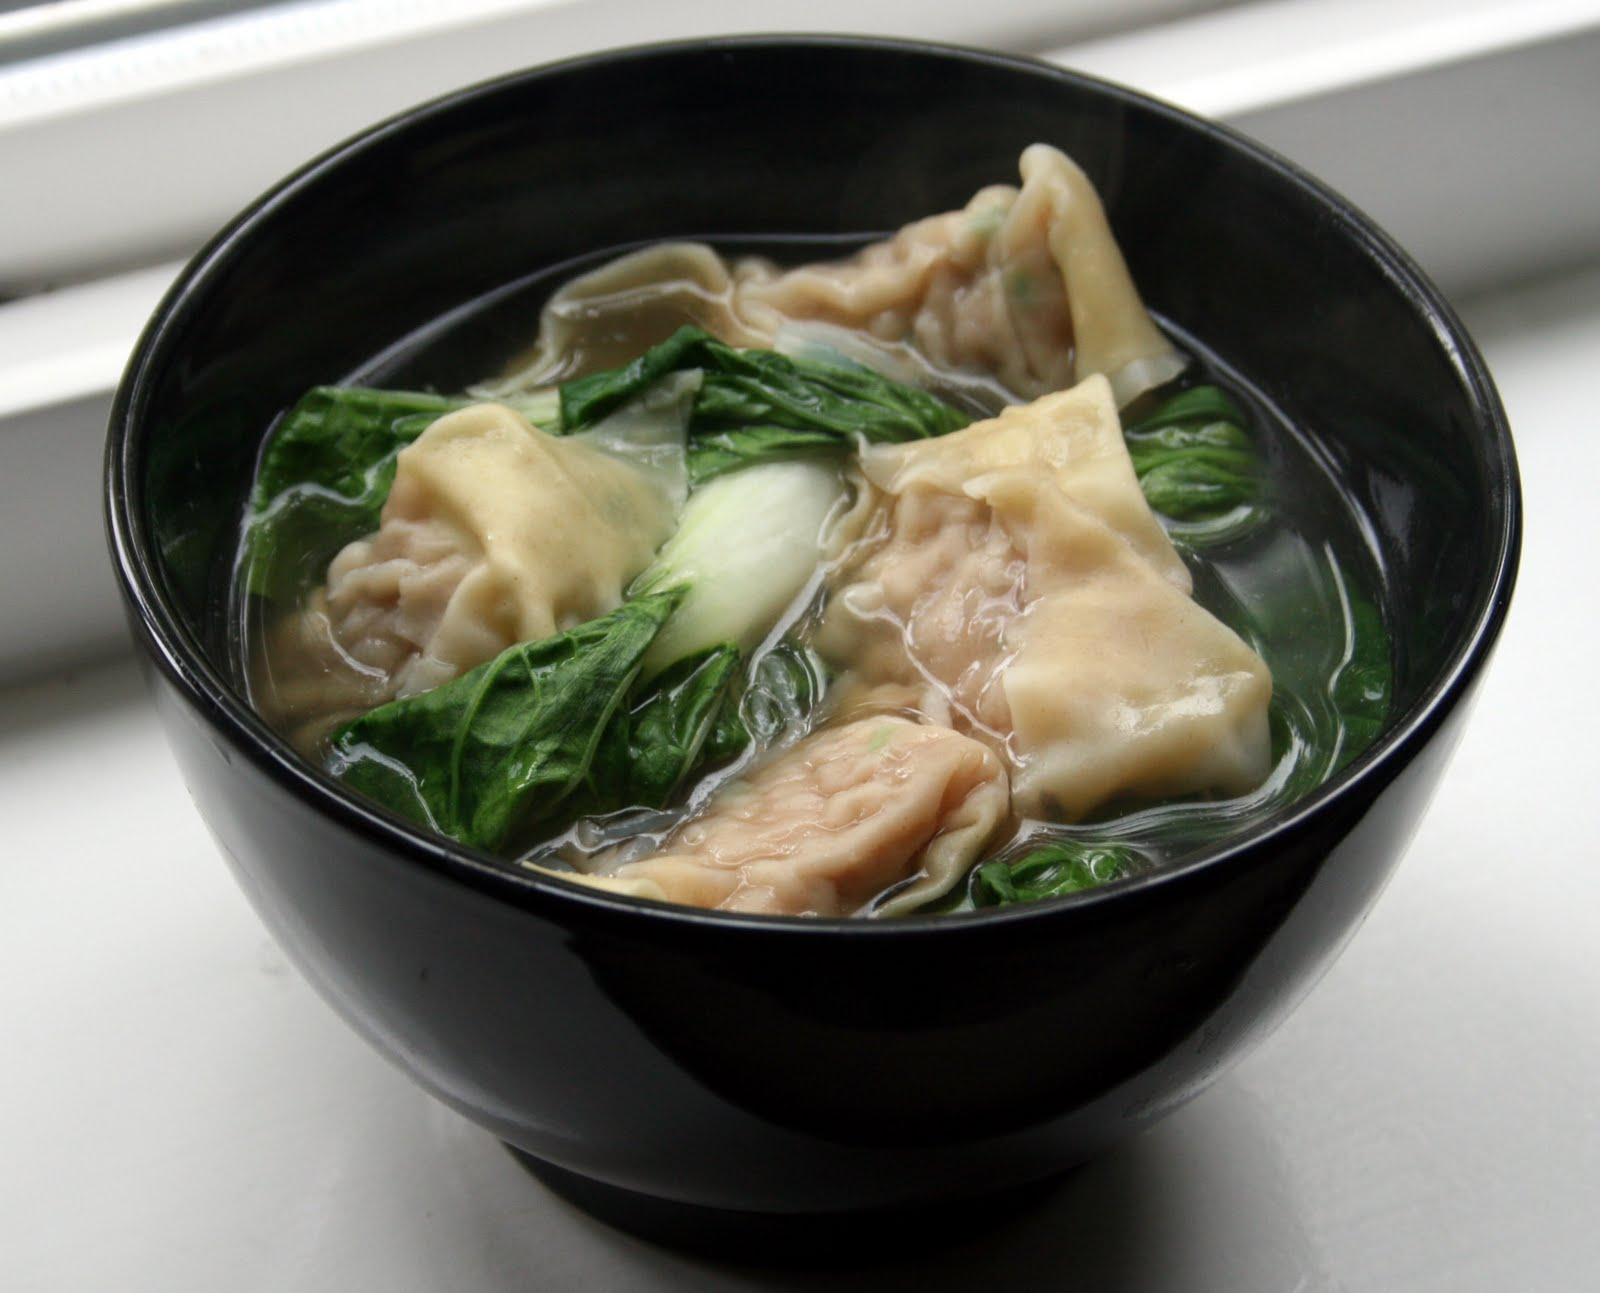 ... wontons it s time to make wonton soup my version of wonton soup is